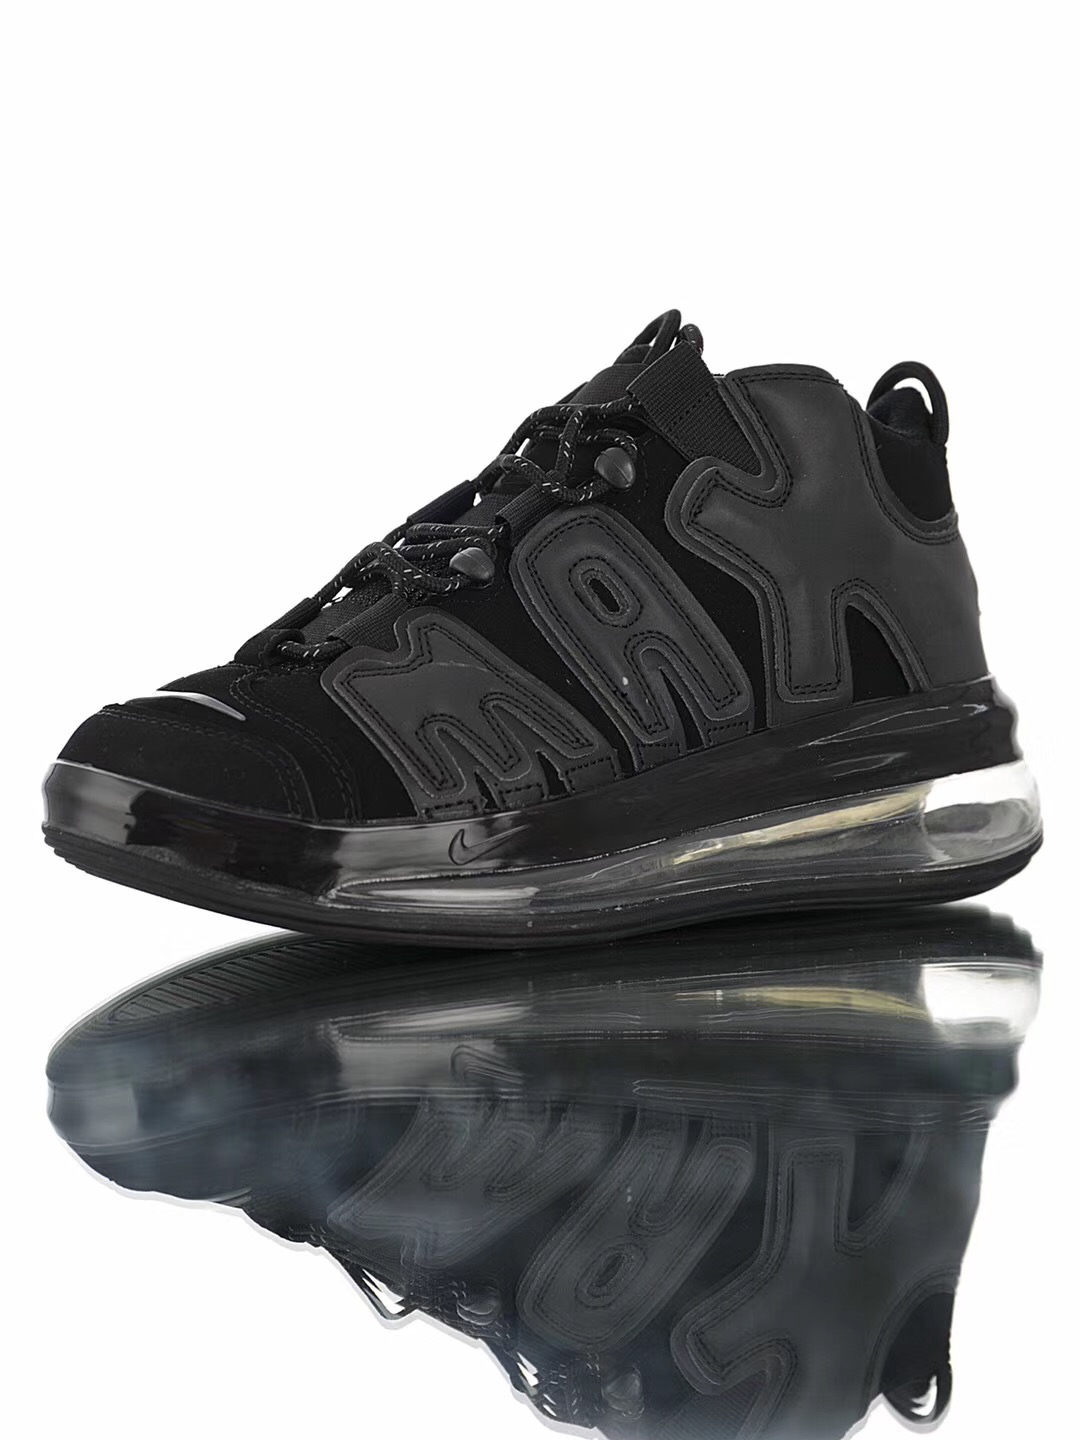 Cheap Real Nike Air More Uptempo 720 QS9 Black